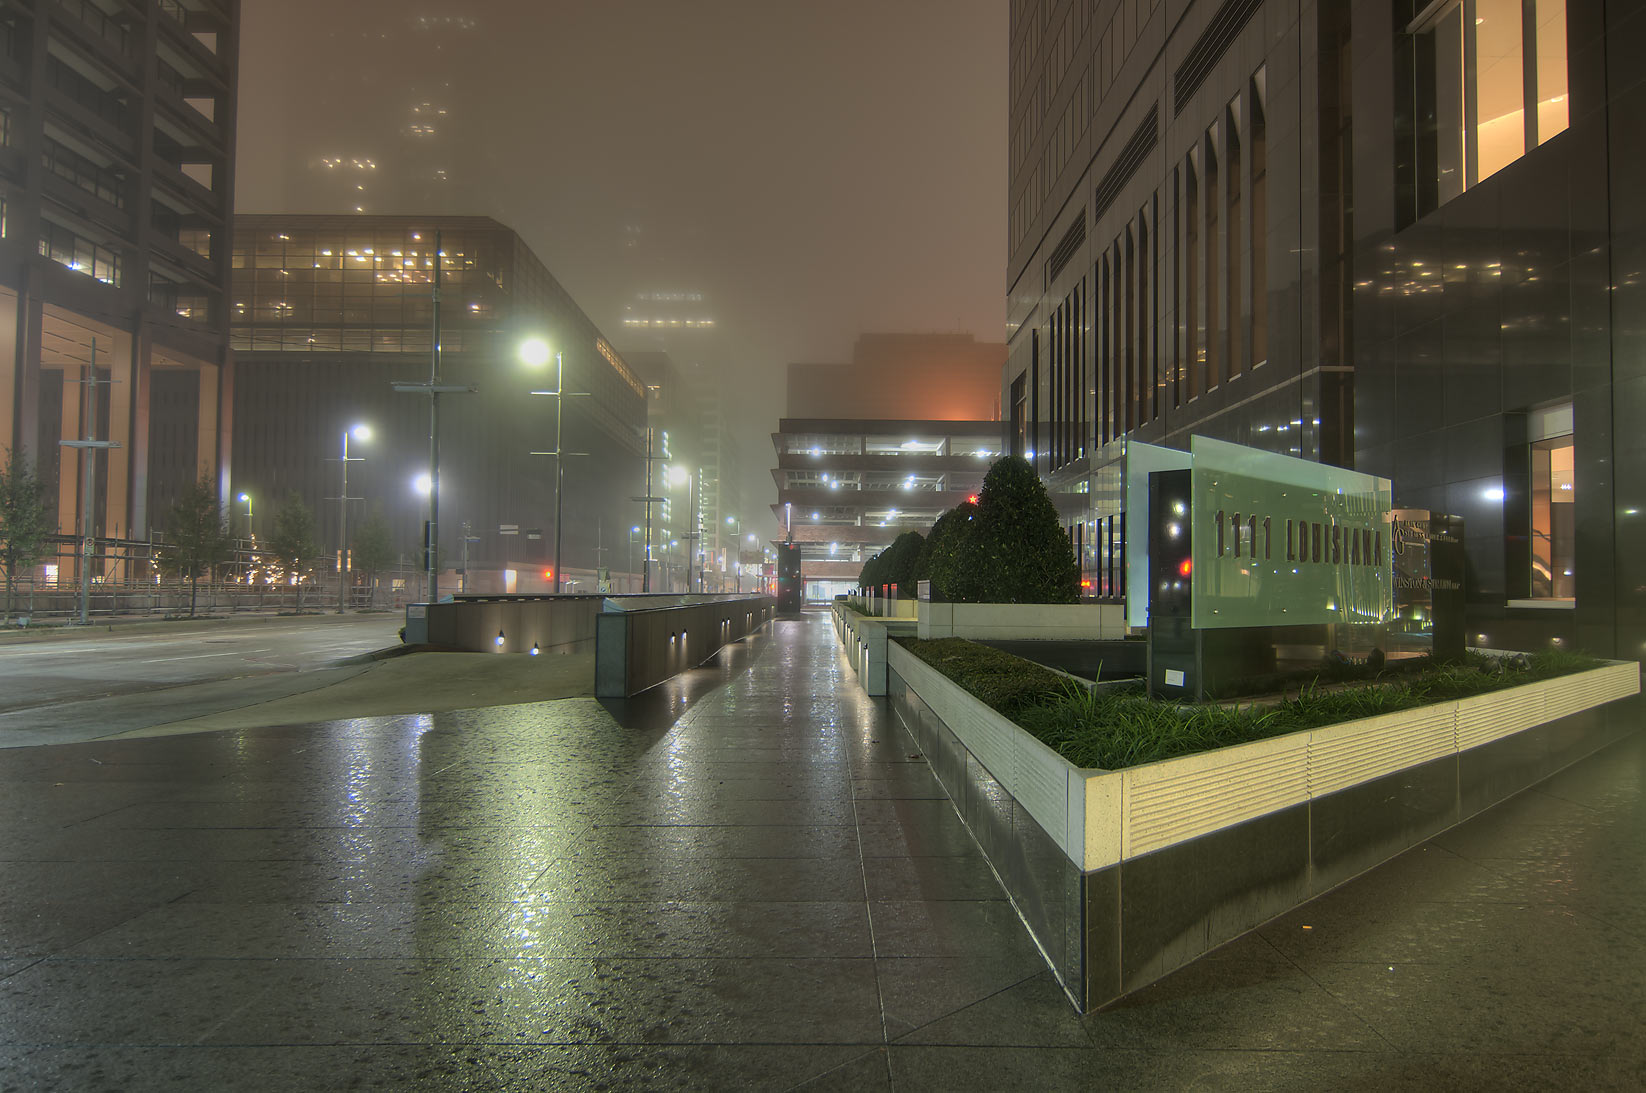 1111 Louisiana St. in downtown in fog. Houston, Texas